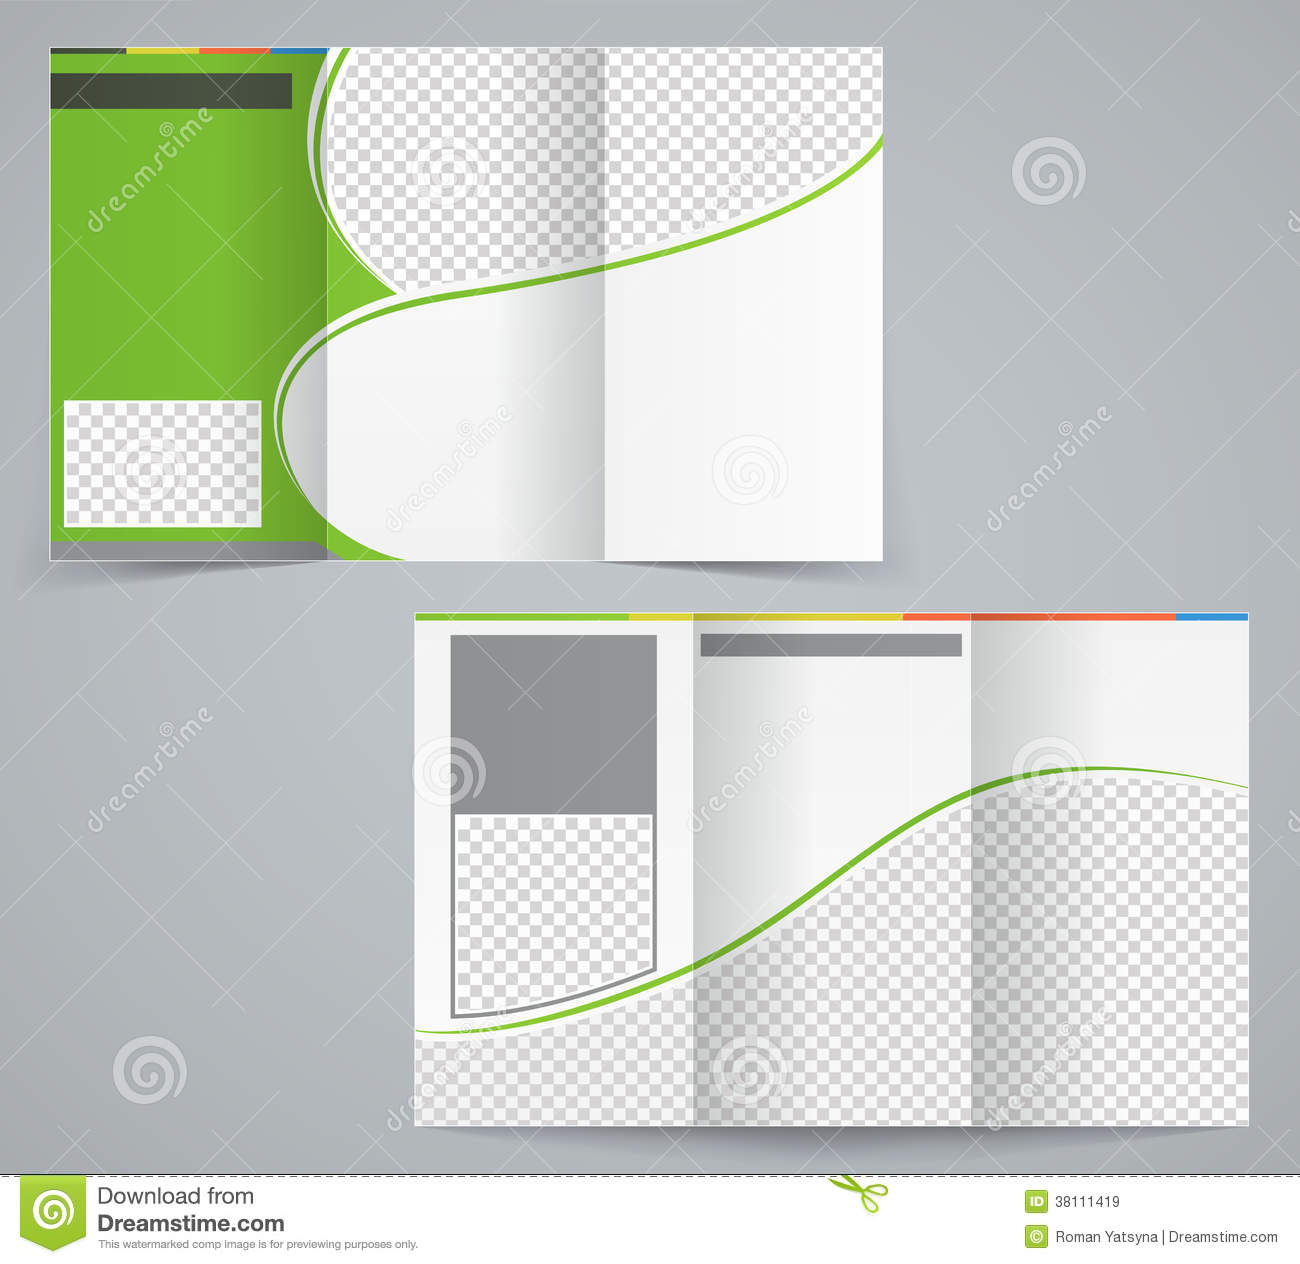 Tri fold business brochure template vector green stock vector tri fold business brochure template vector green wajeb Gallery